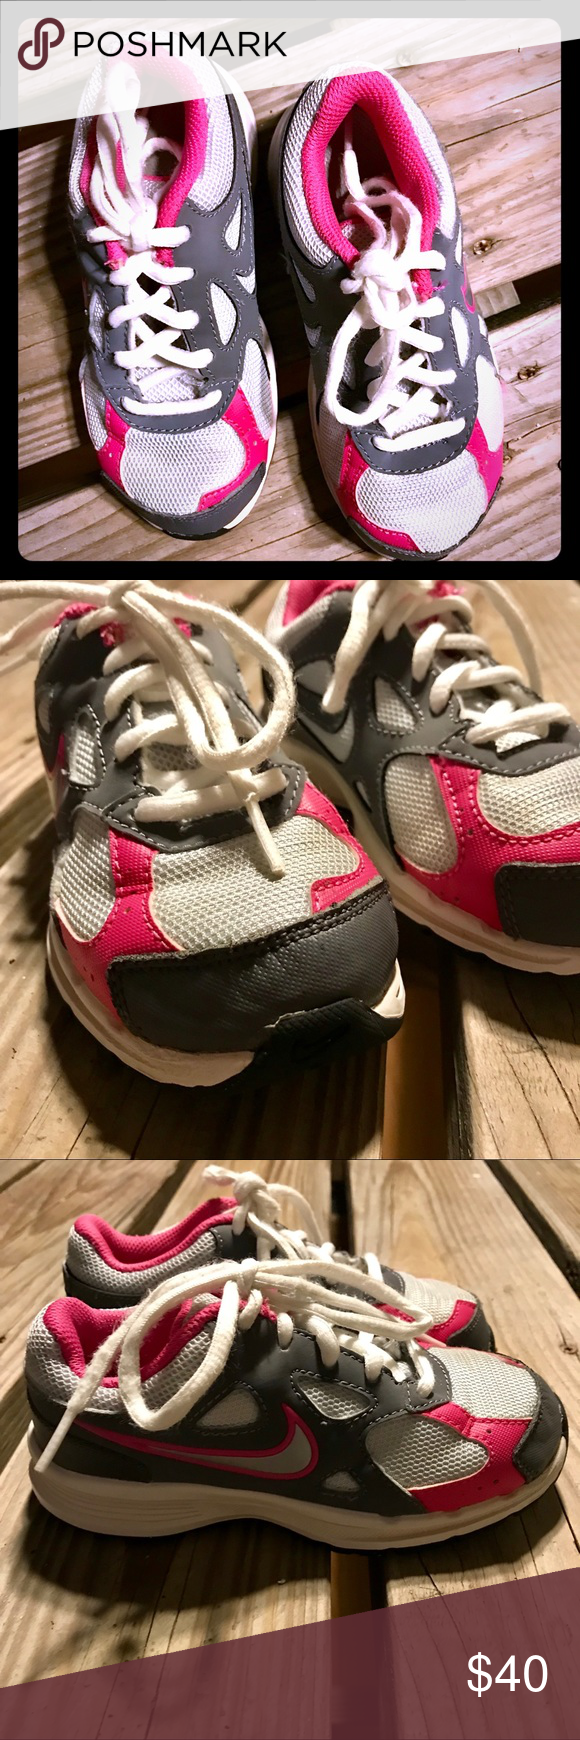 Nike Airmax, Girls, 10 Toddler Size 10, Shoes sneakers and Nike shoe